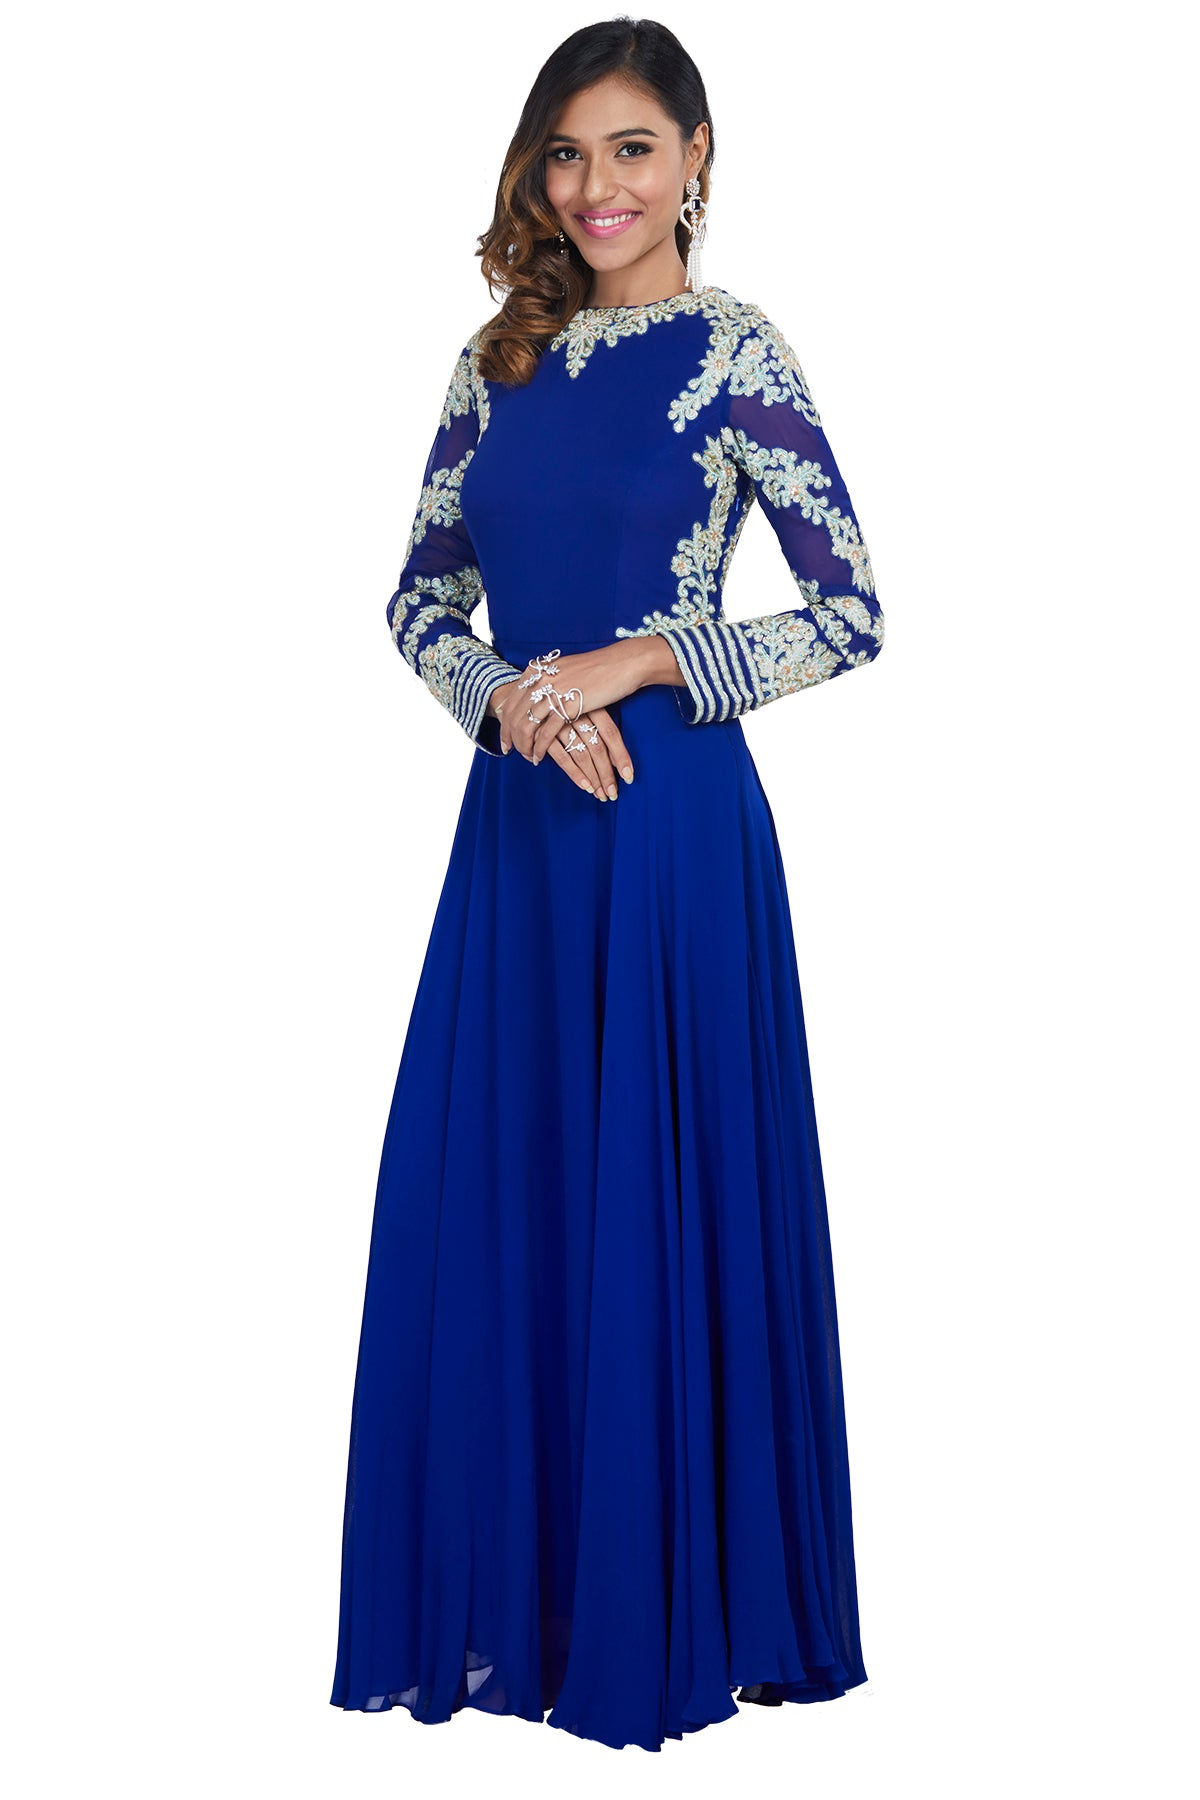 Be the mesmerising vision of majesty in this royal blue georgette gown with a boat neck and fully embroidered sleeves in white & mint green threadwork.